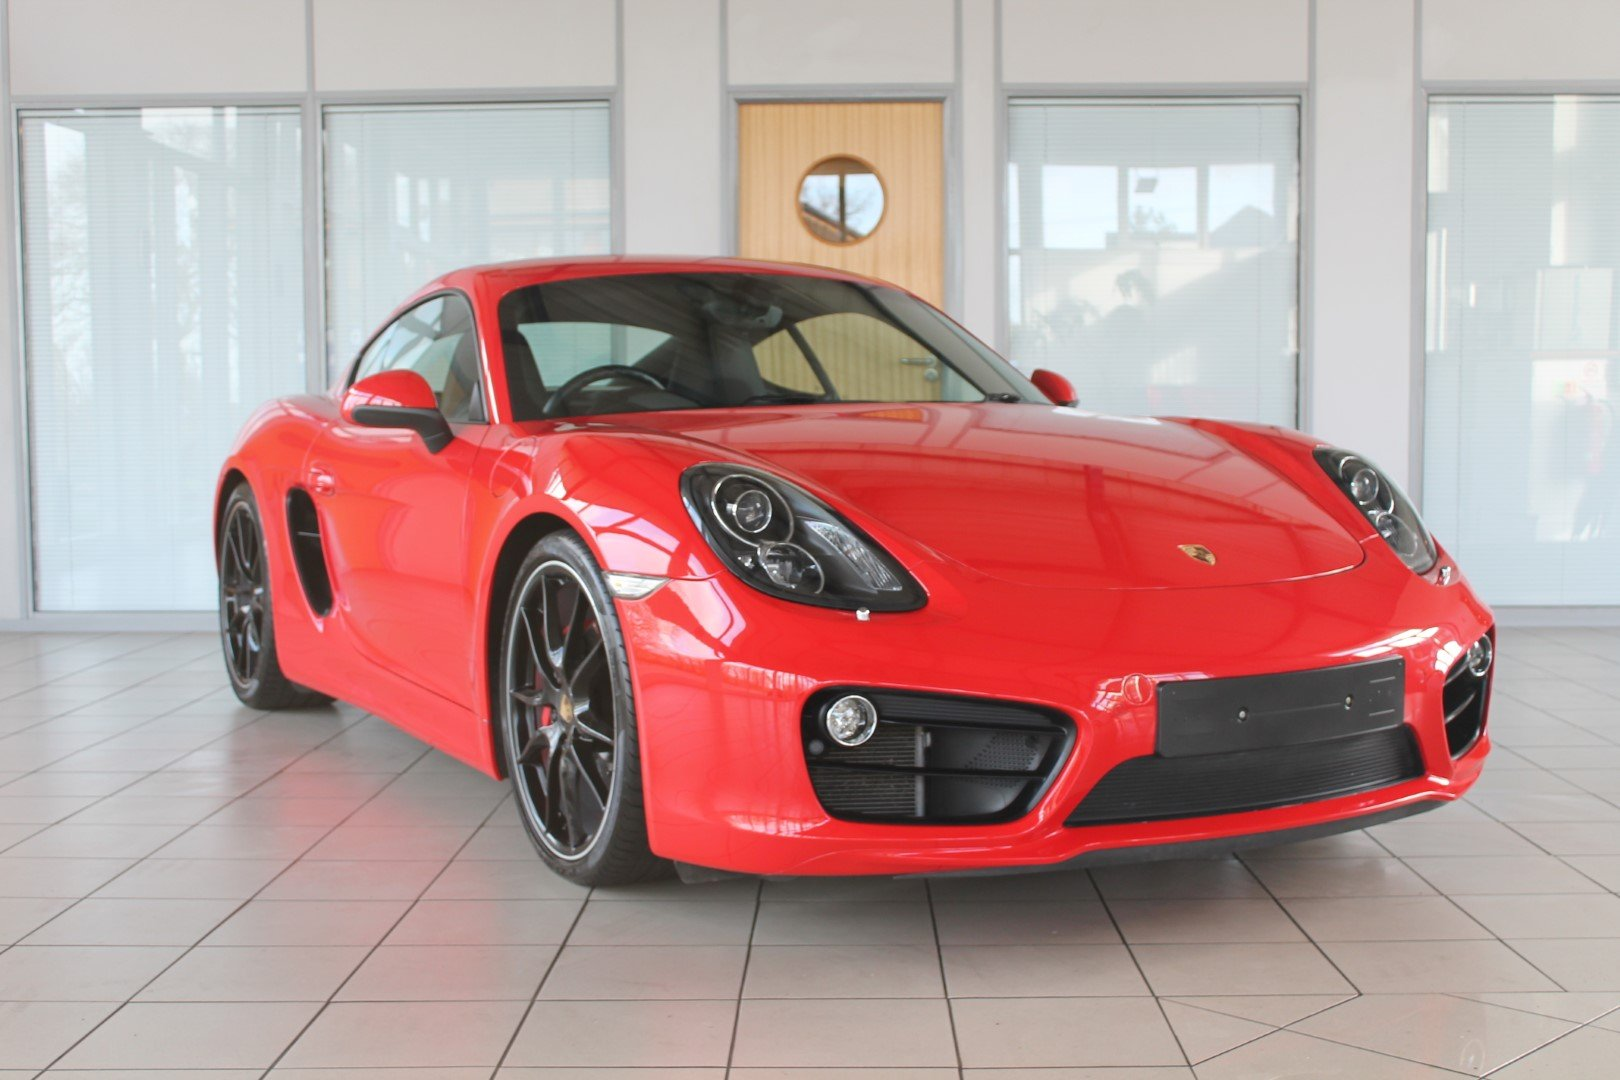 2014 Cayman (981) S Manual For Sale (picture 2 of 6)